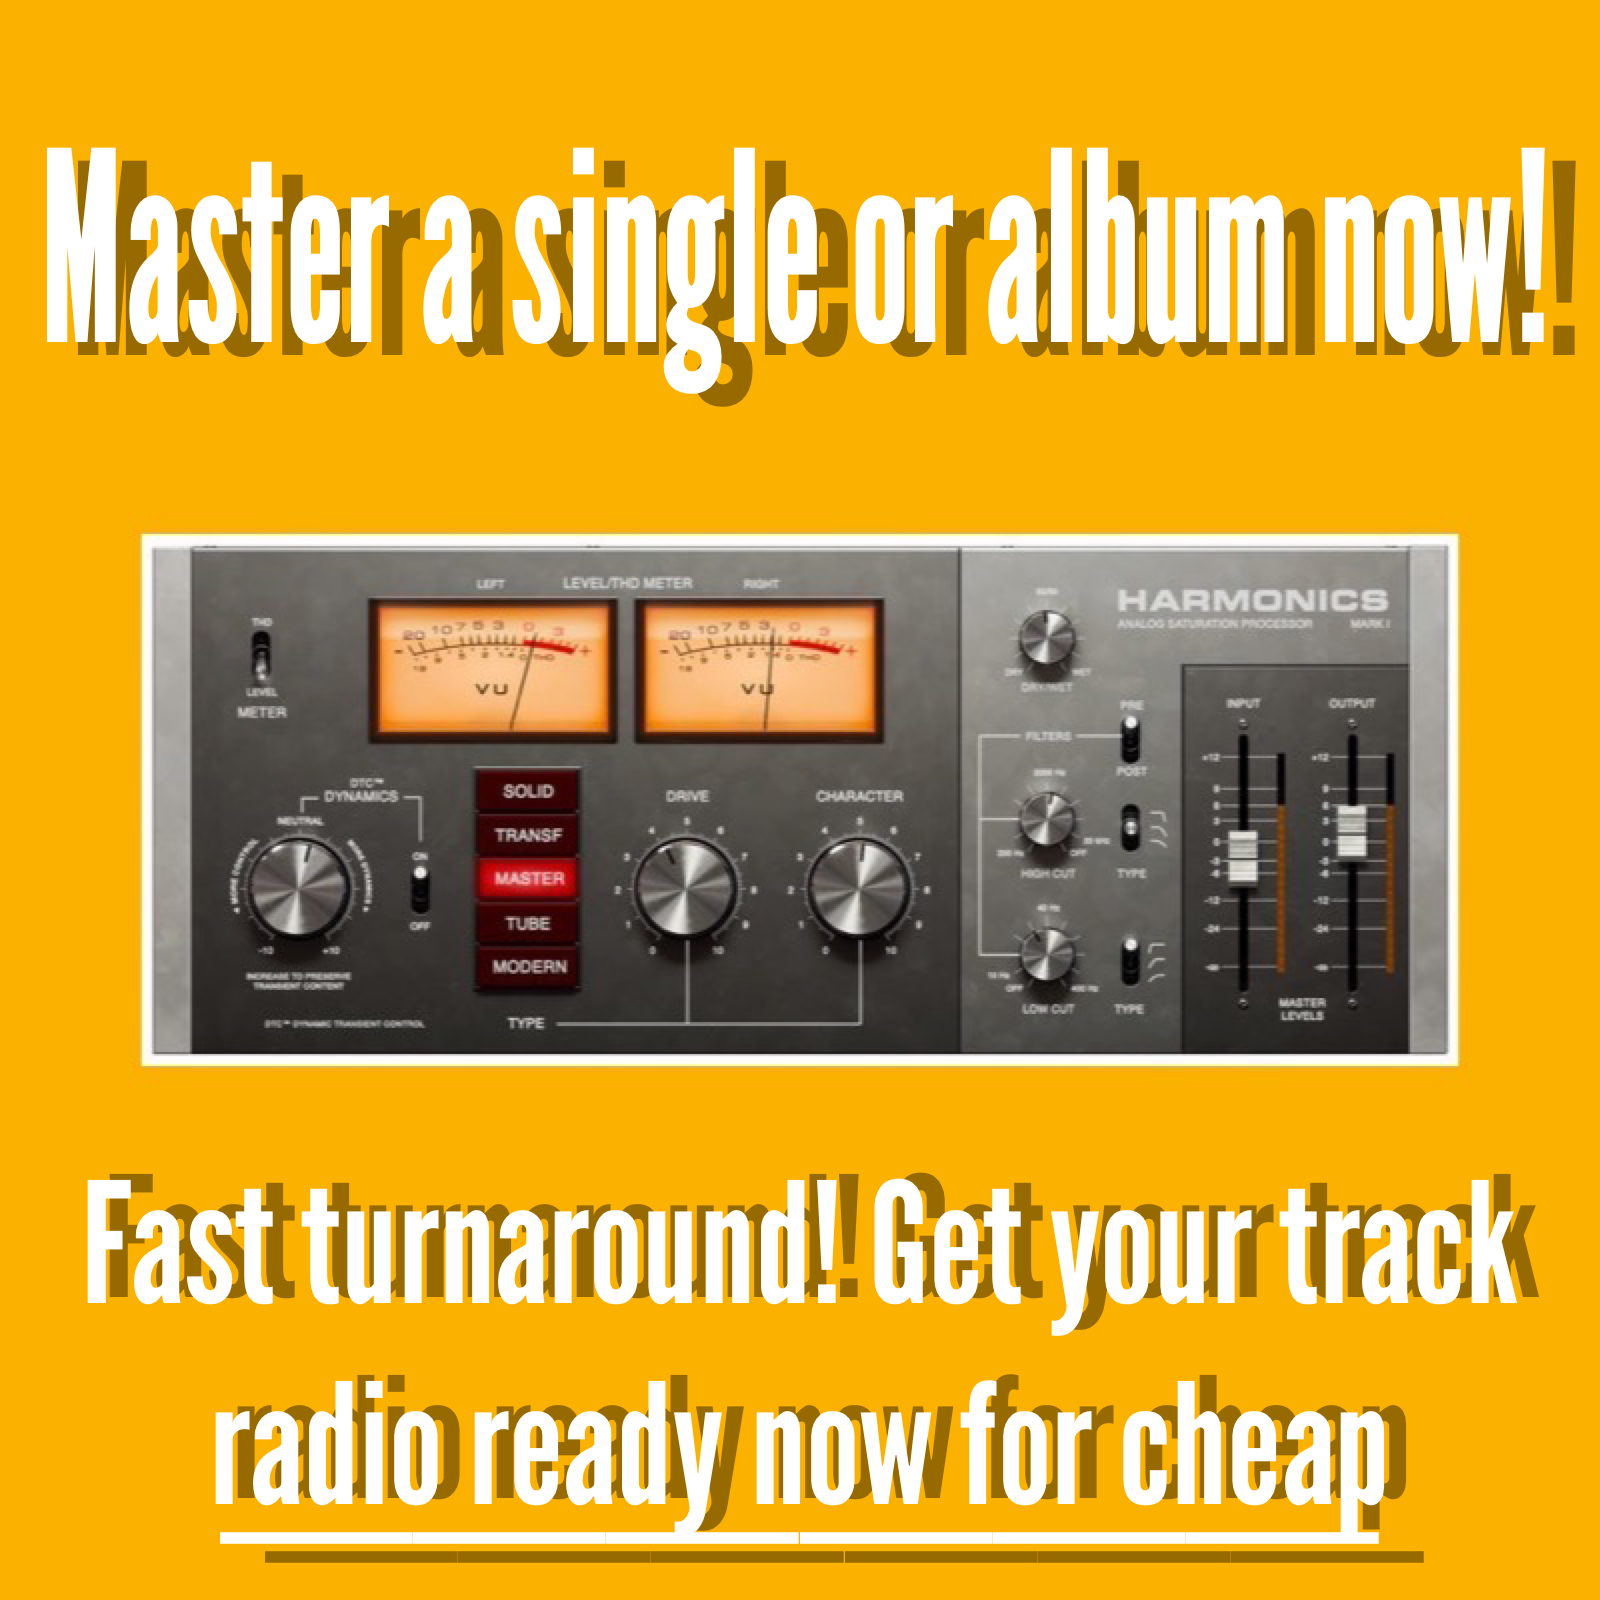 Master your single/album now quality guaranteed